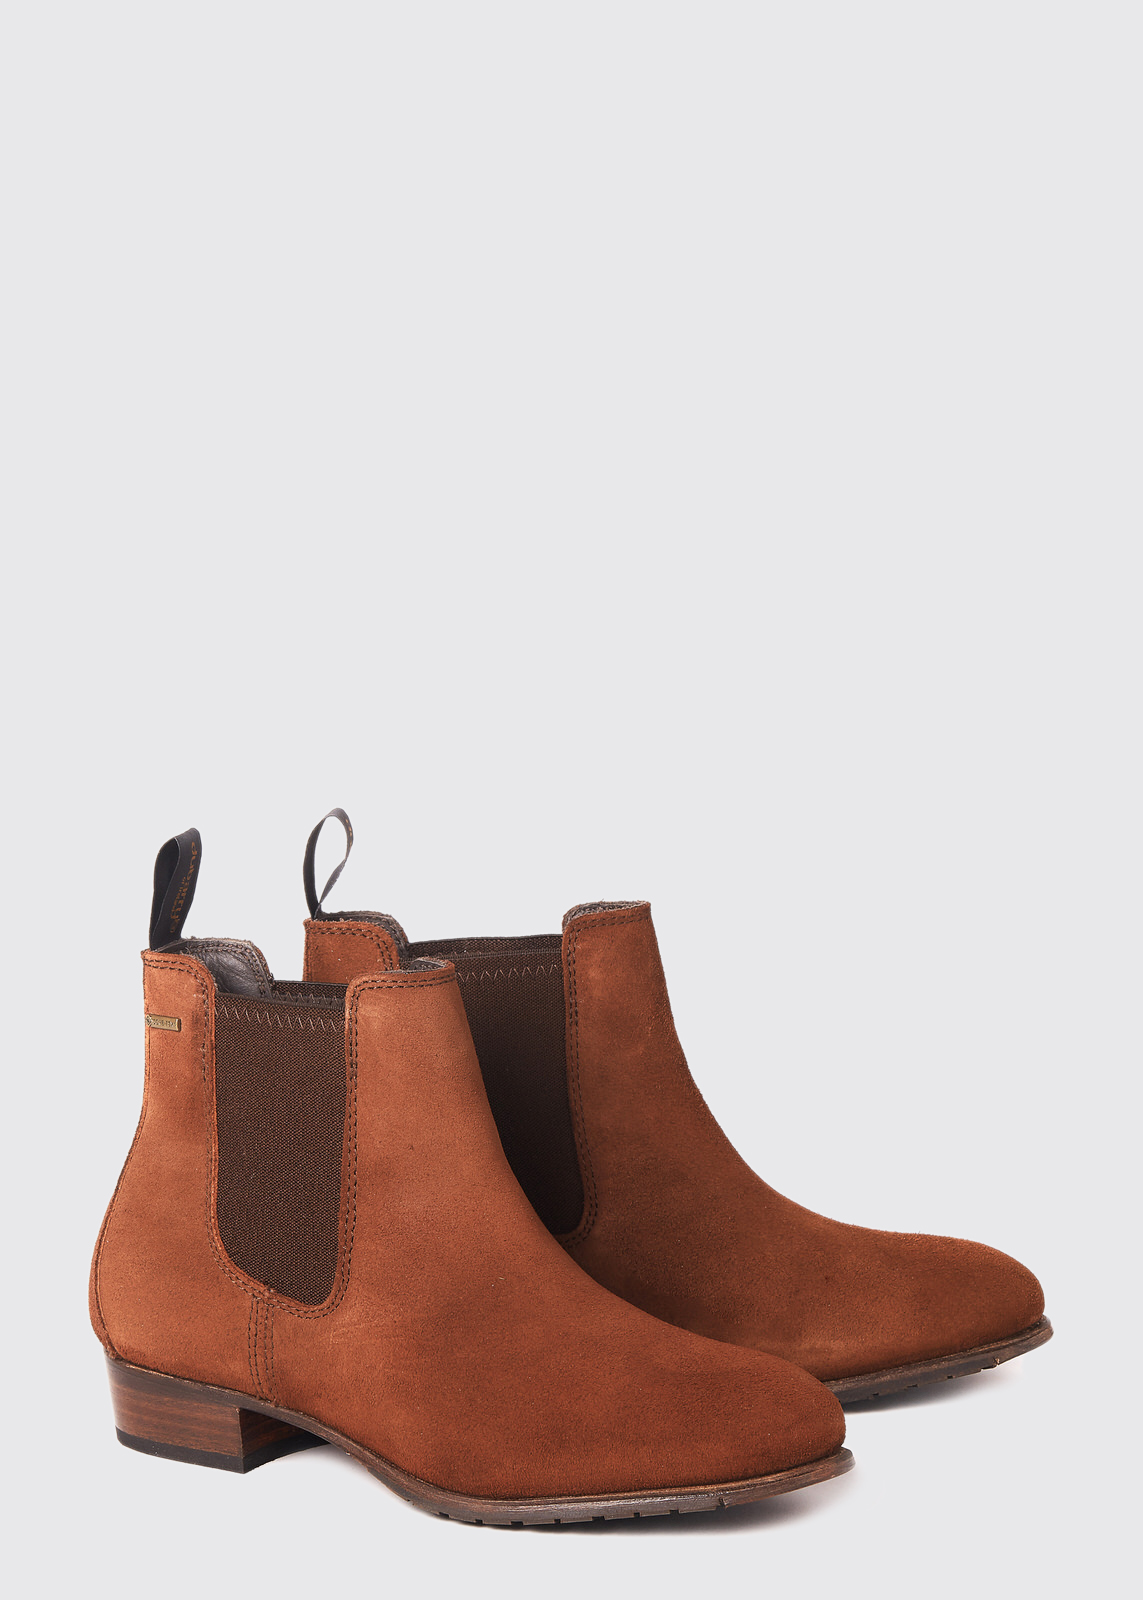 Cork Leather Soled Boot - Russet